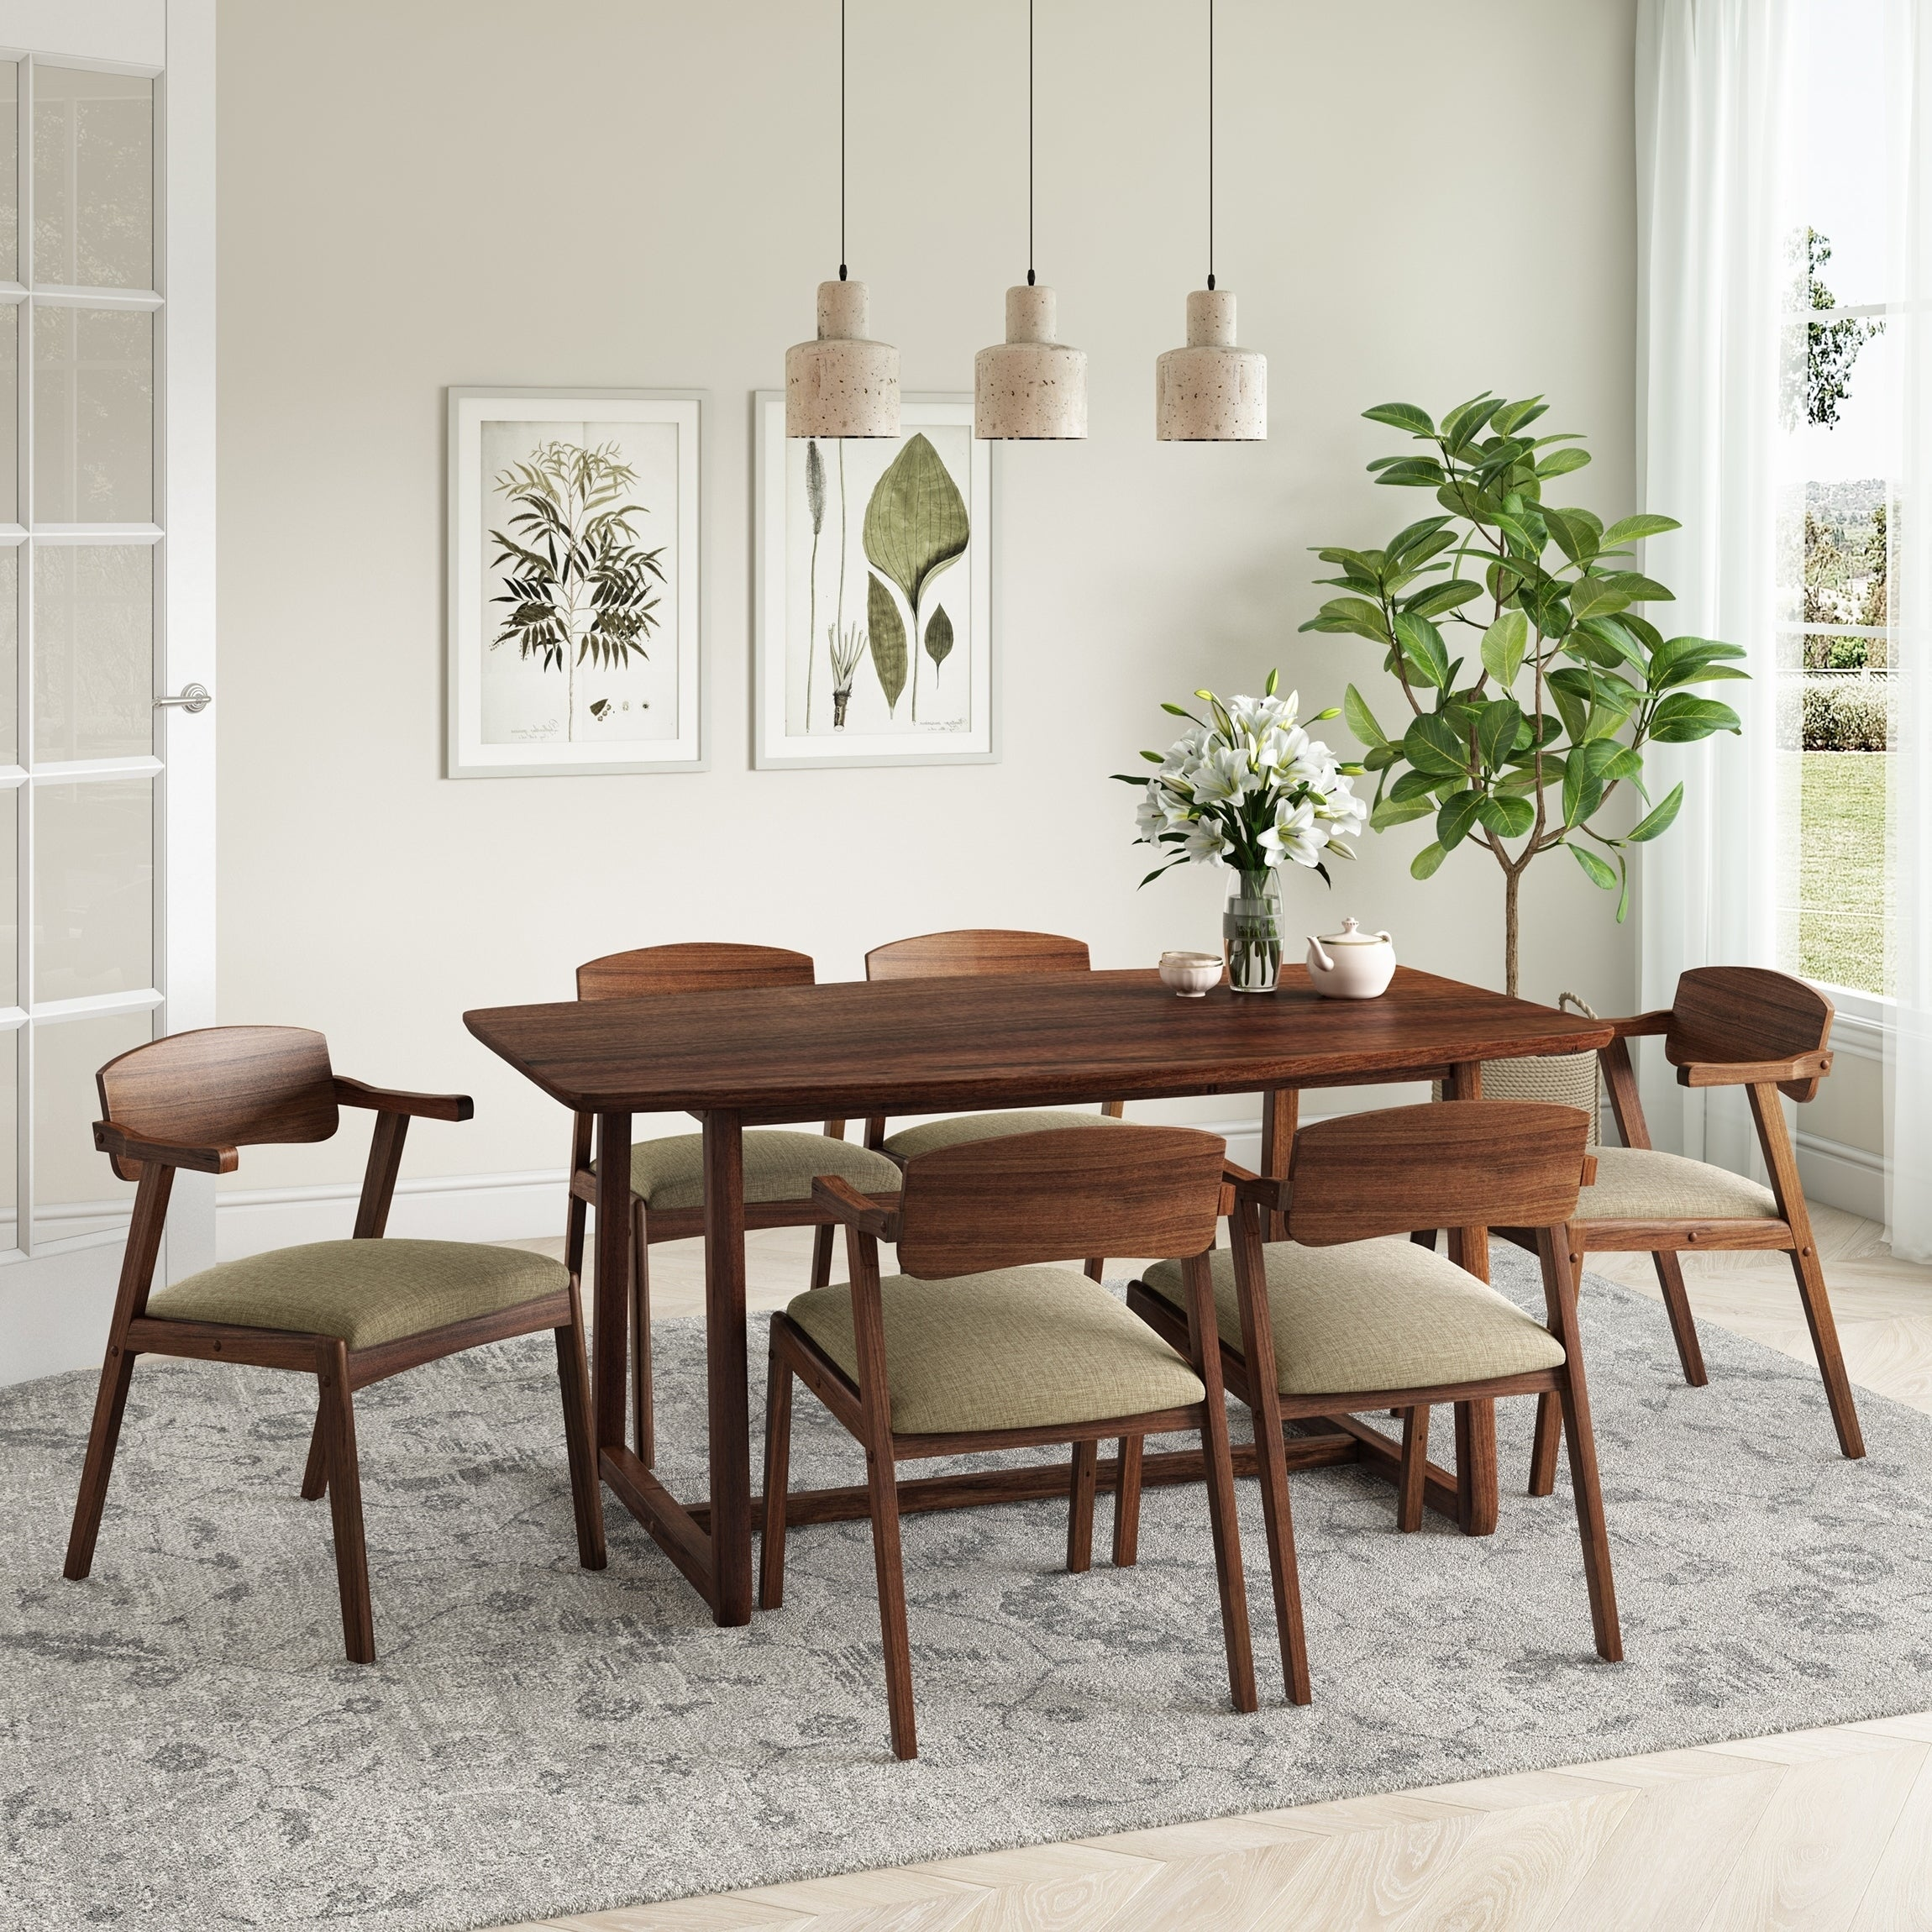 Shop Black Friday Deals On Carson Carrington Comiskey 7 Piece Mid Century Modern Cherry Wood Dining Table And Arm Chairs On Sale Overstock 30478112